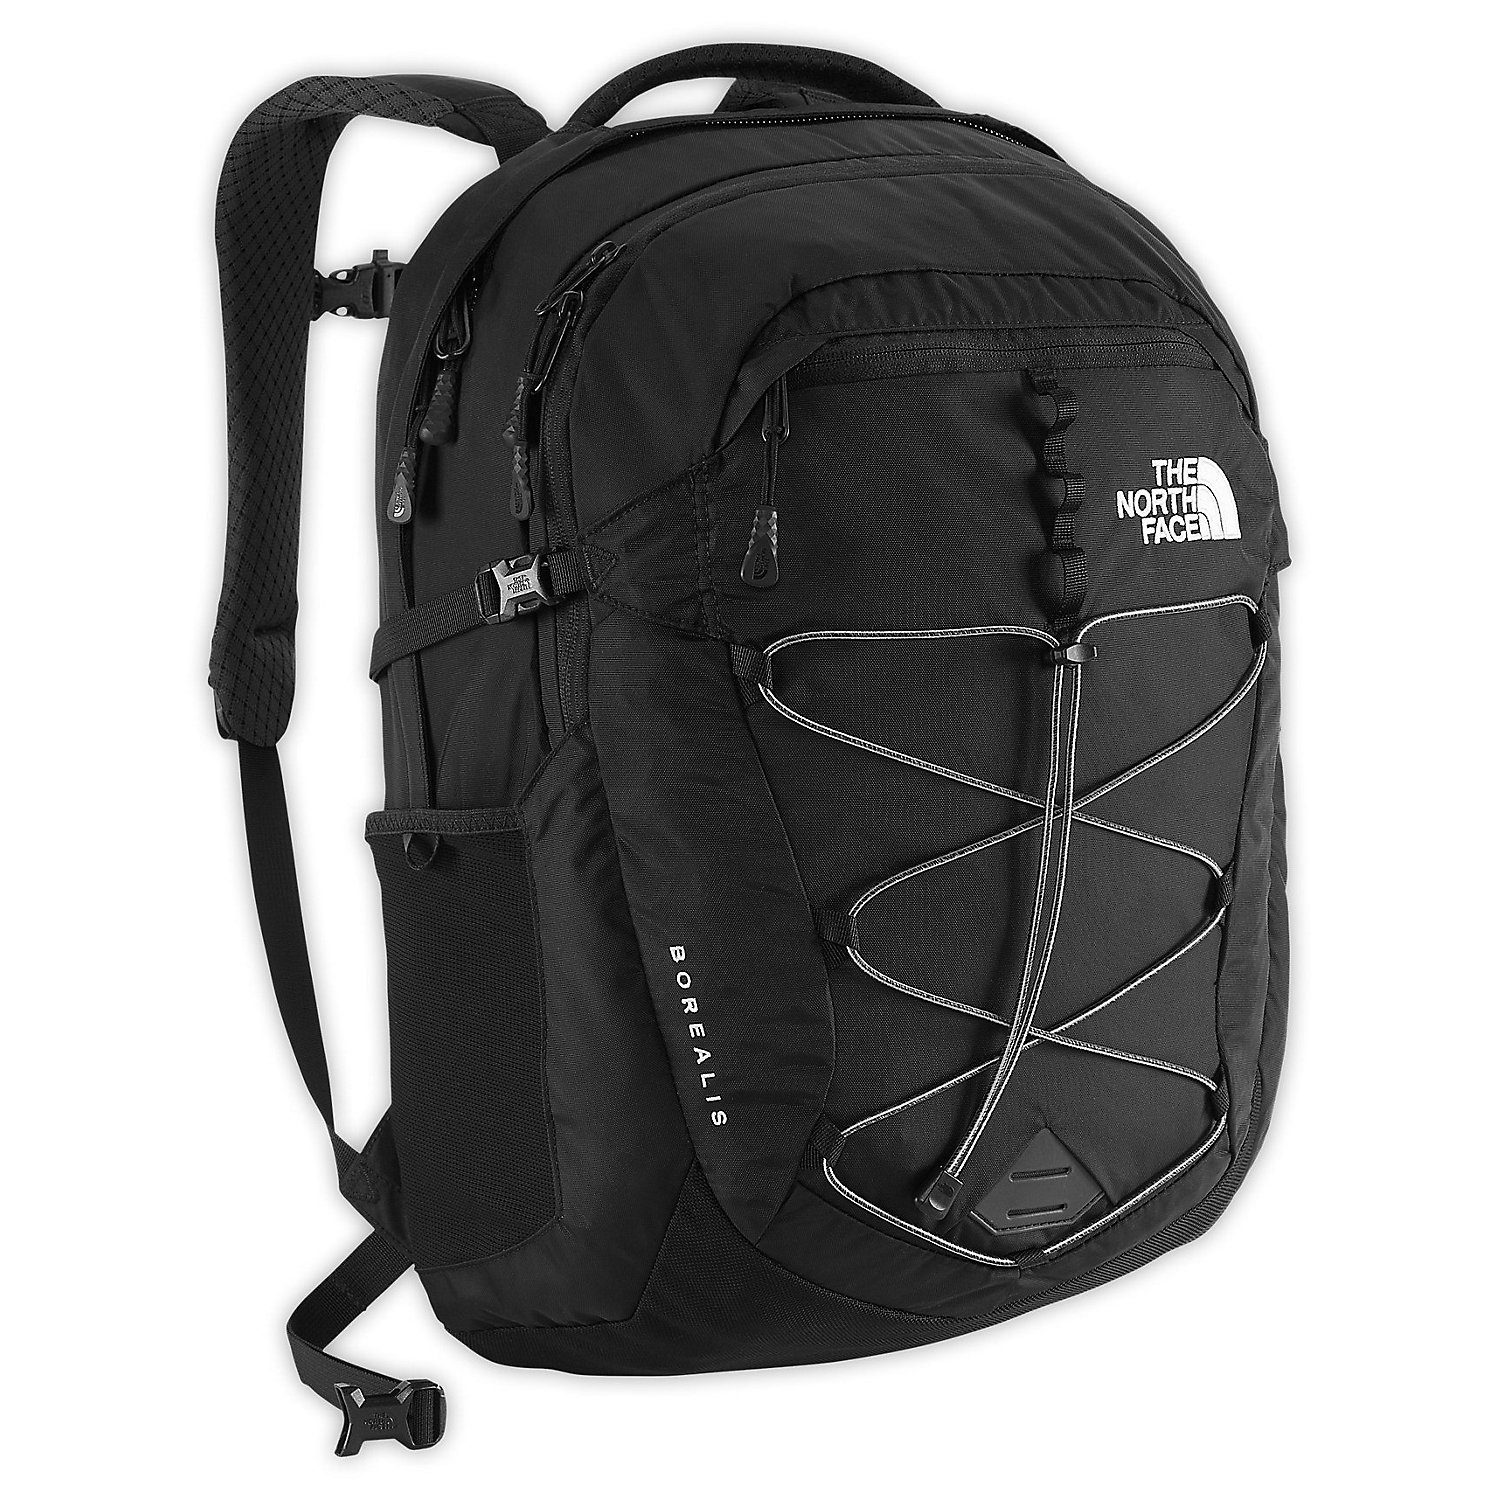 dd40553c4a3 The North Face Women's Borealis Backpack - Moosejaw